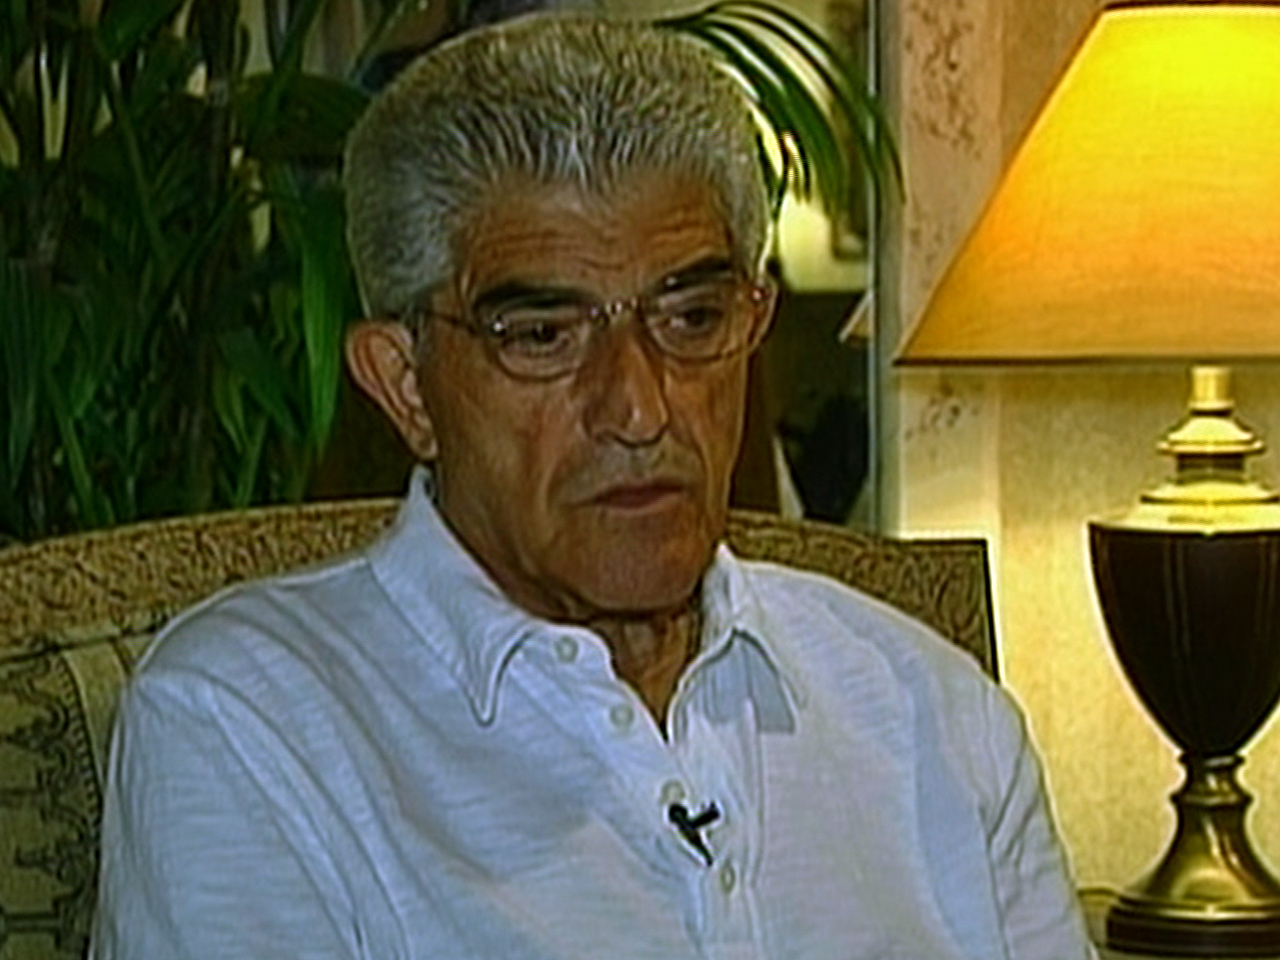 frank vincent raging bull